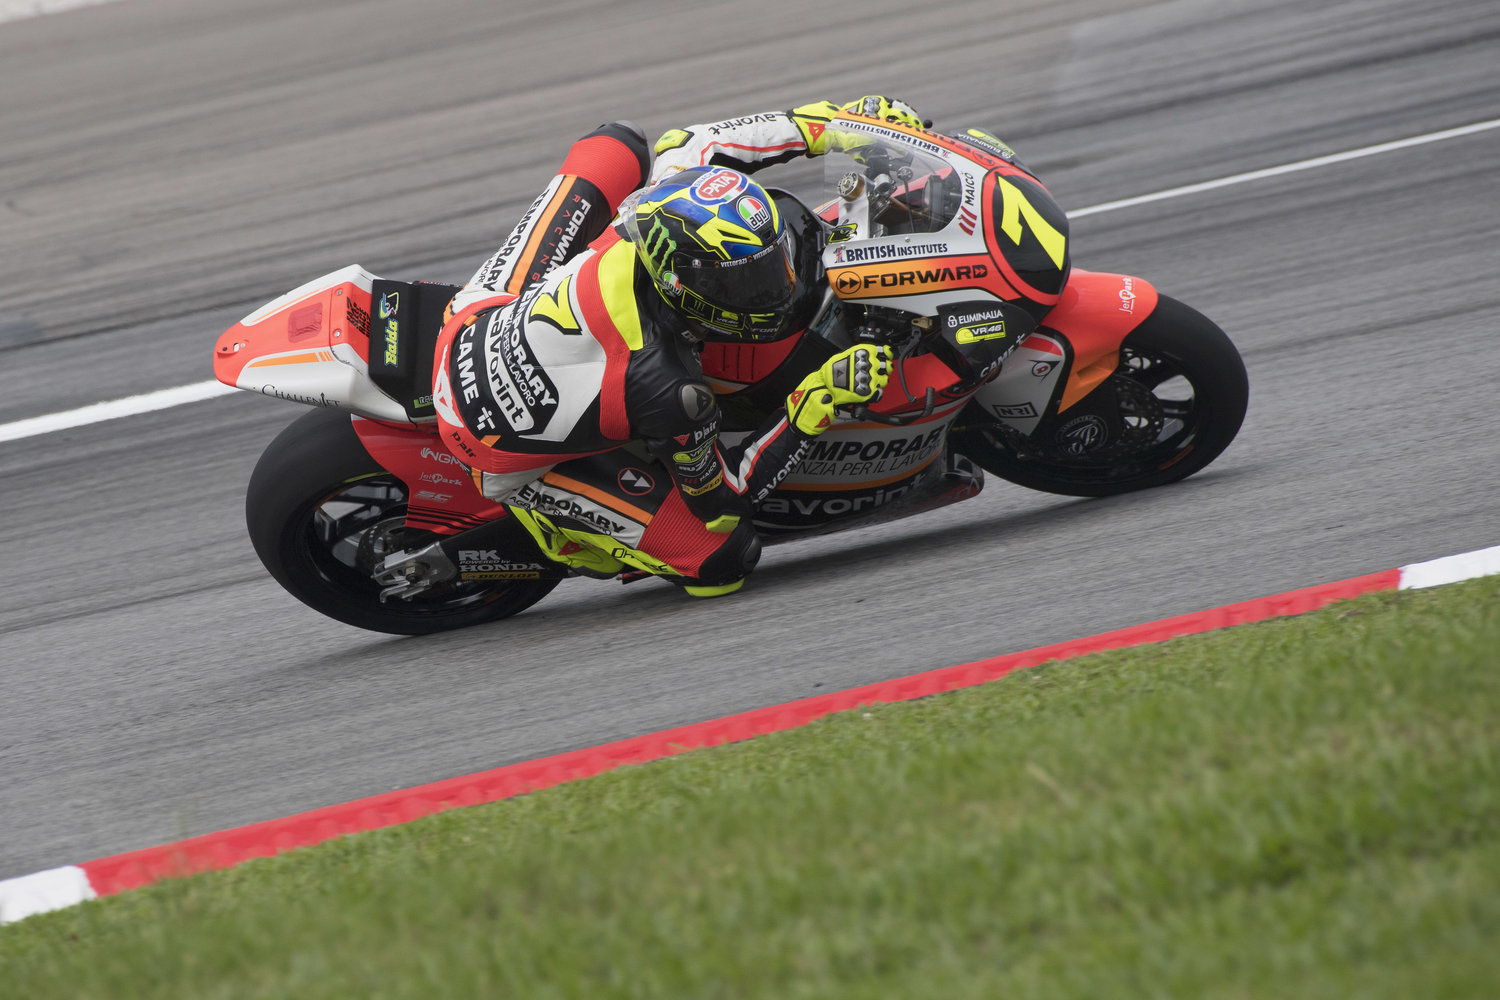 Impressive performance from Baldassarri and Marini on opening day in Sepang